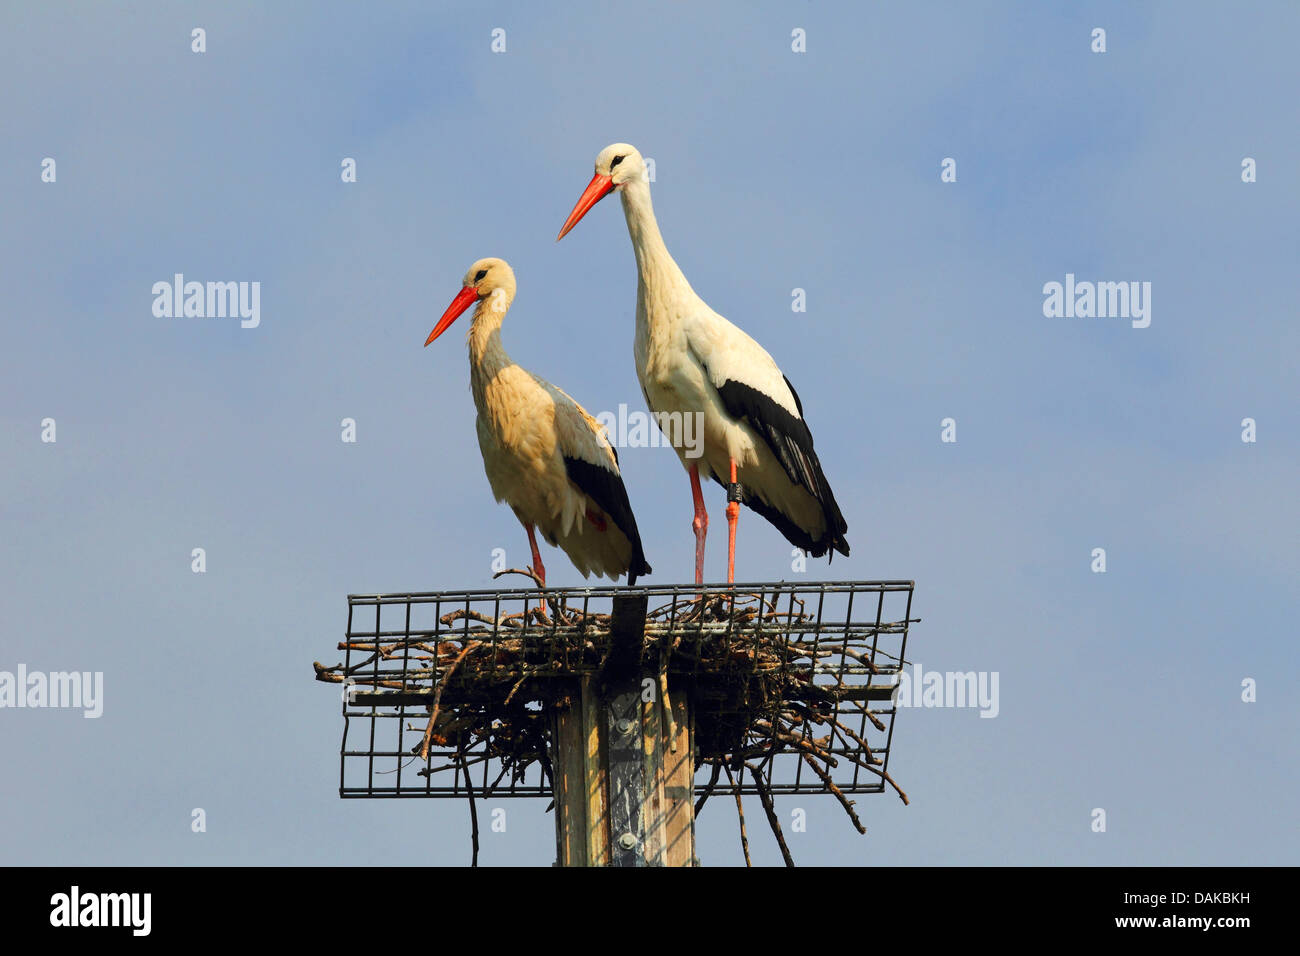 white stork (Ciconia ciconia), two white storks on nesting aid, Germany Stock Photo